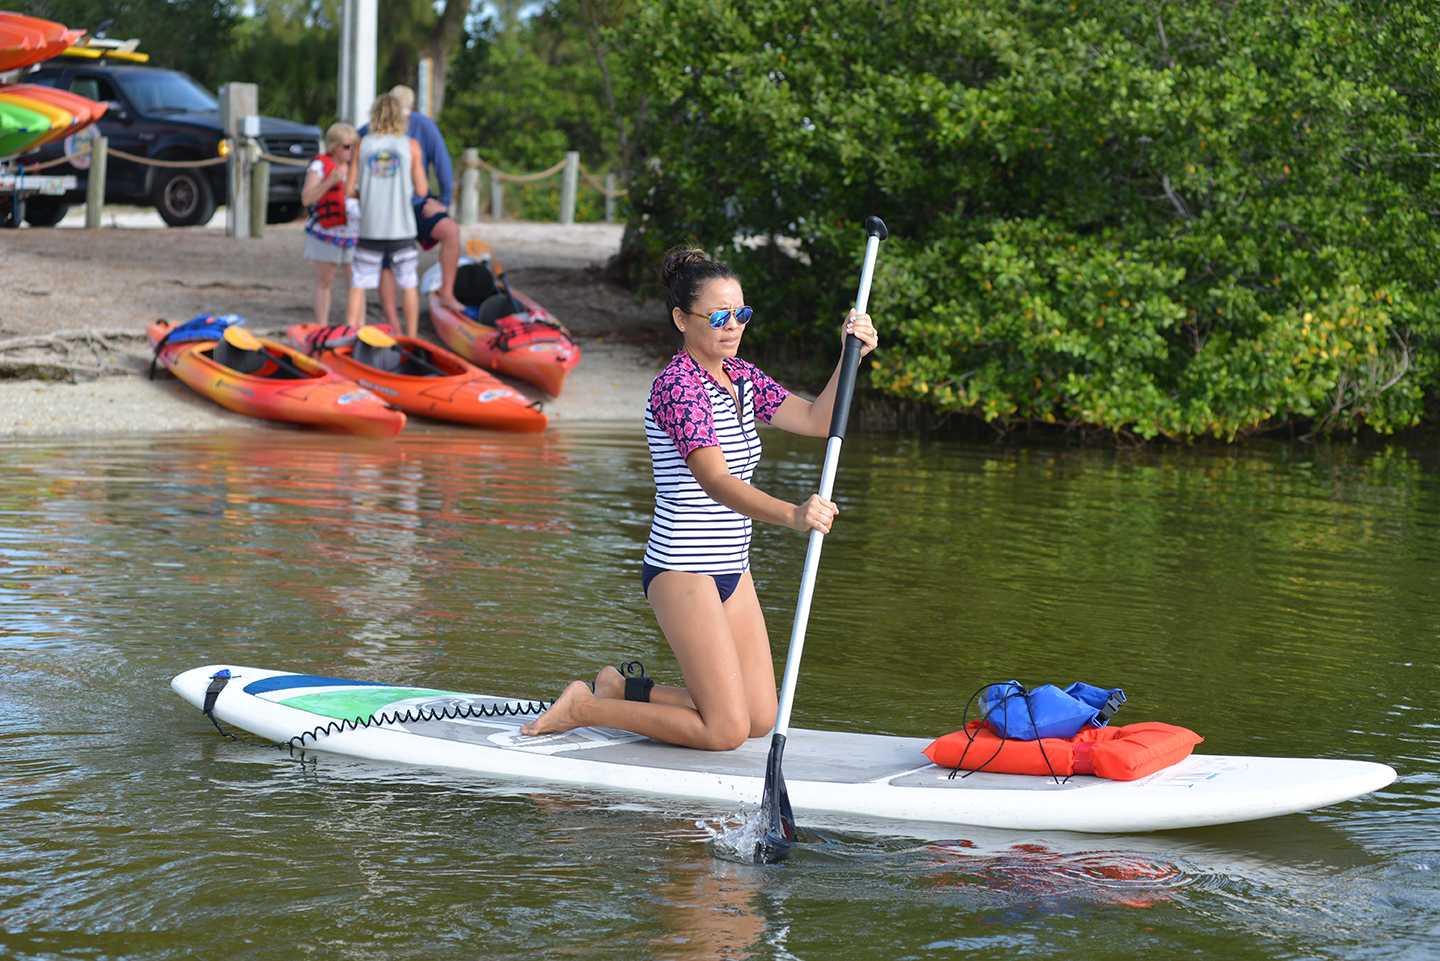 20170502_PaddleboardTurtleBeachPark_005_SD